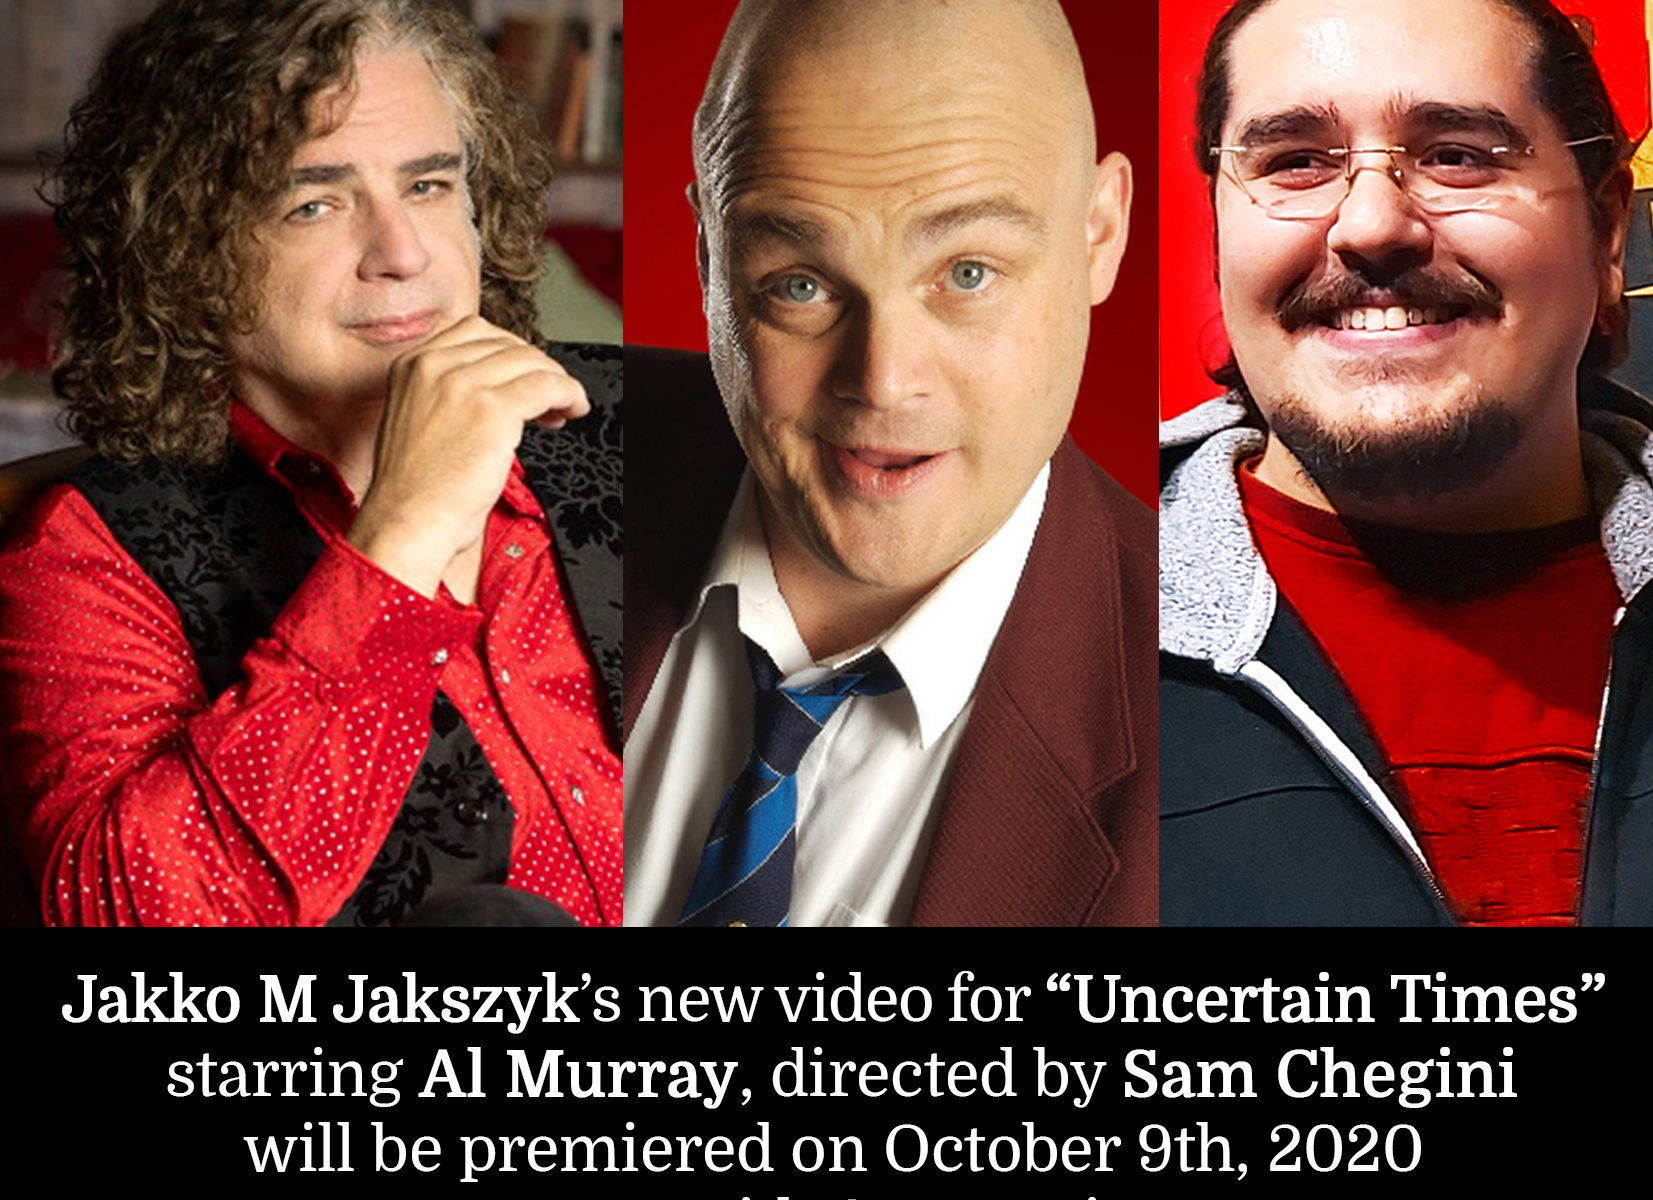 Jakko M Jakszyk Uncertain Times starring Al Murray directed by Sam Chegini